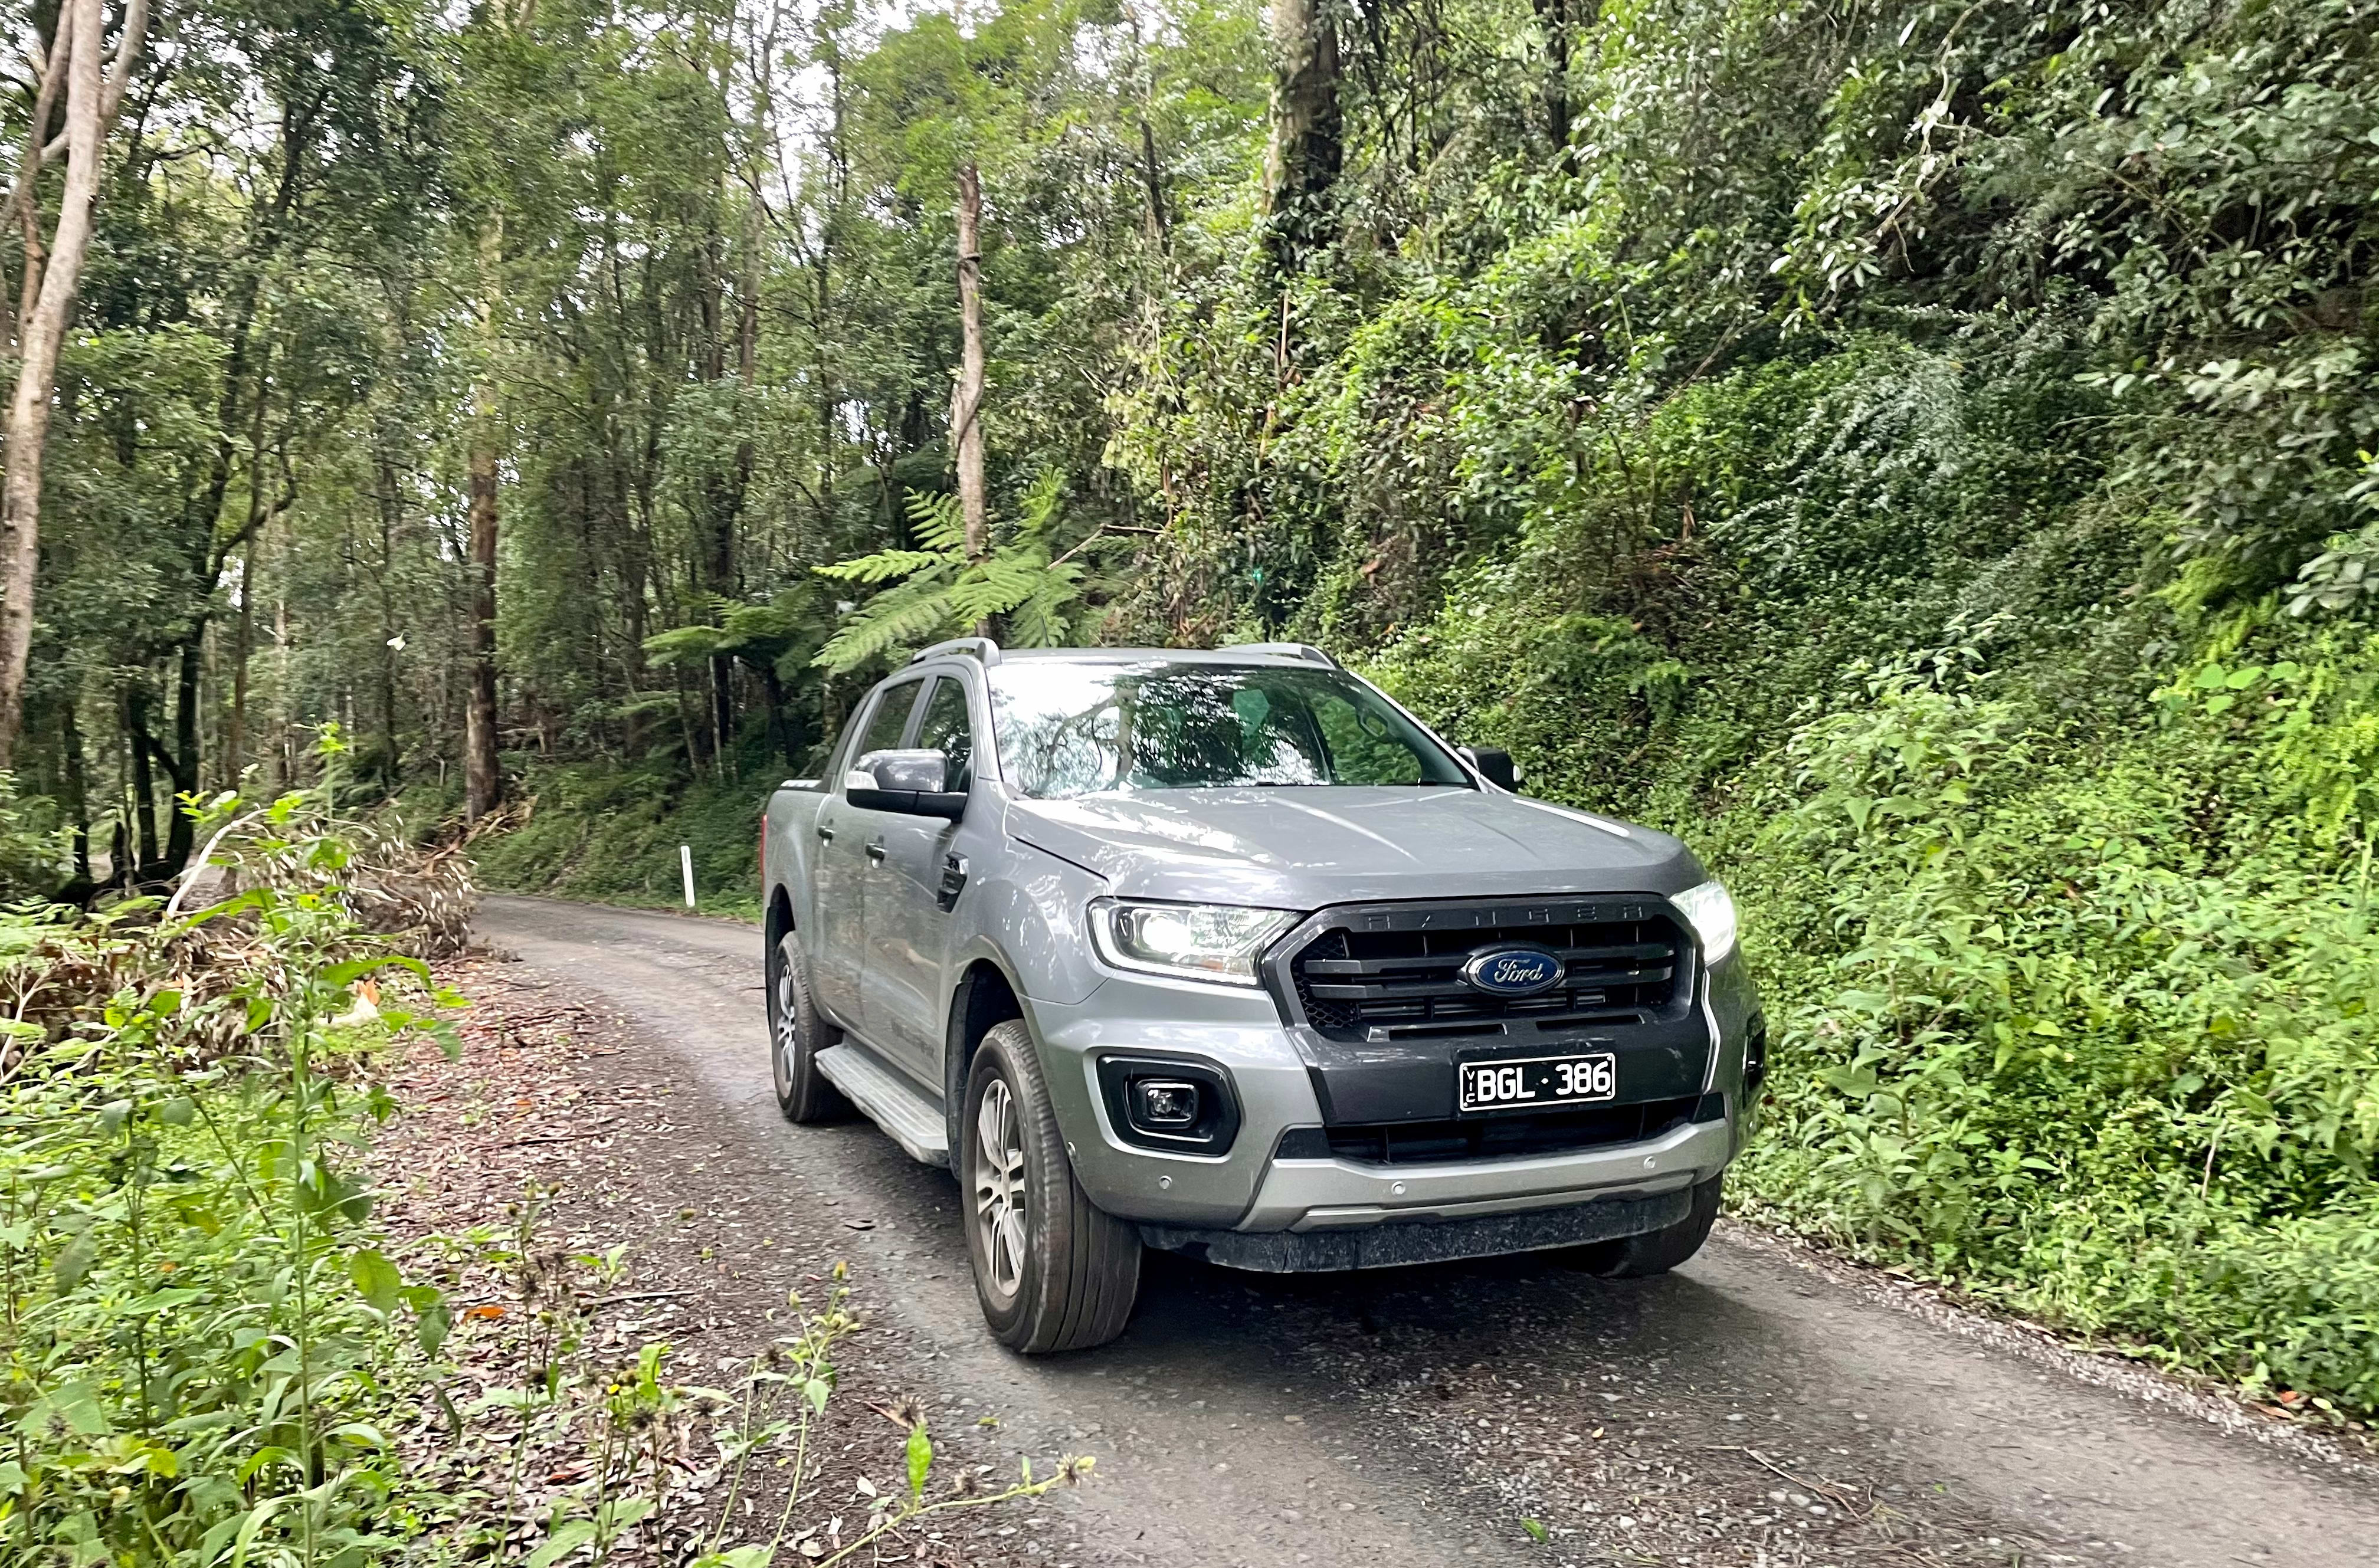 2021 Ford Ranger Wildtrak in the shed